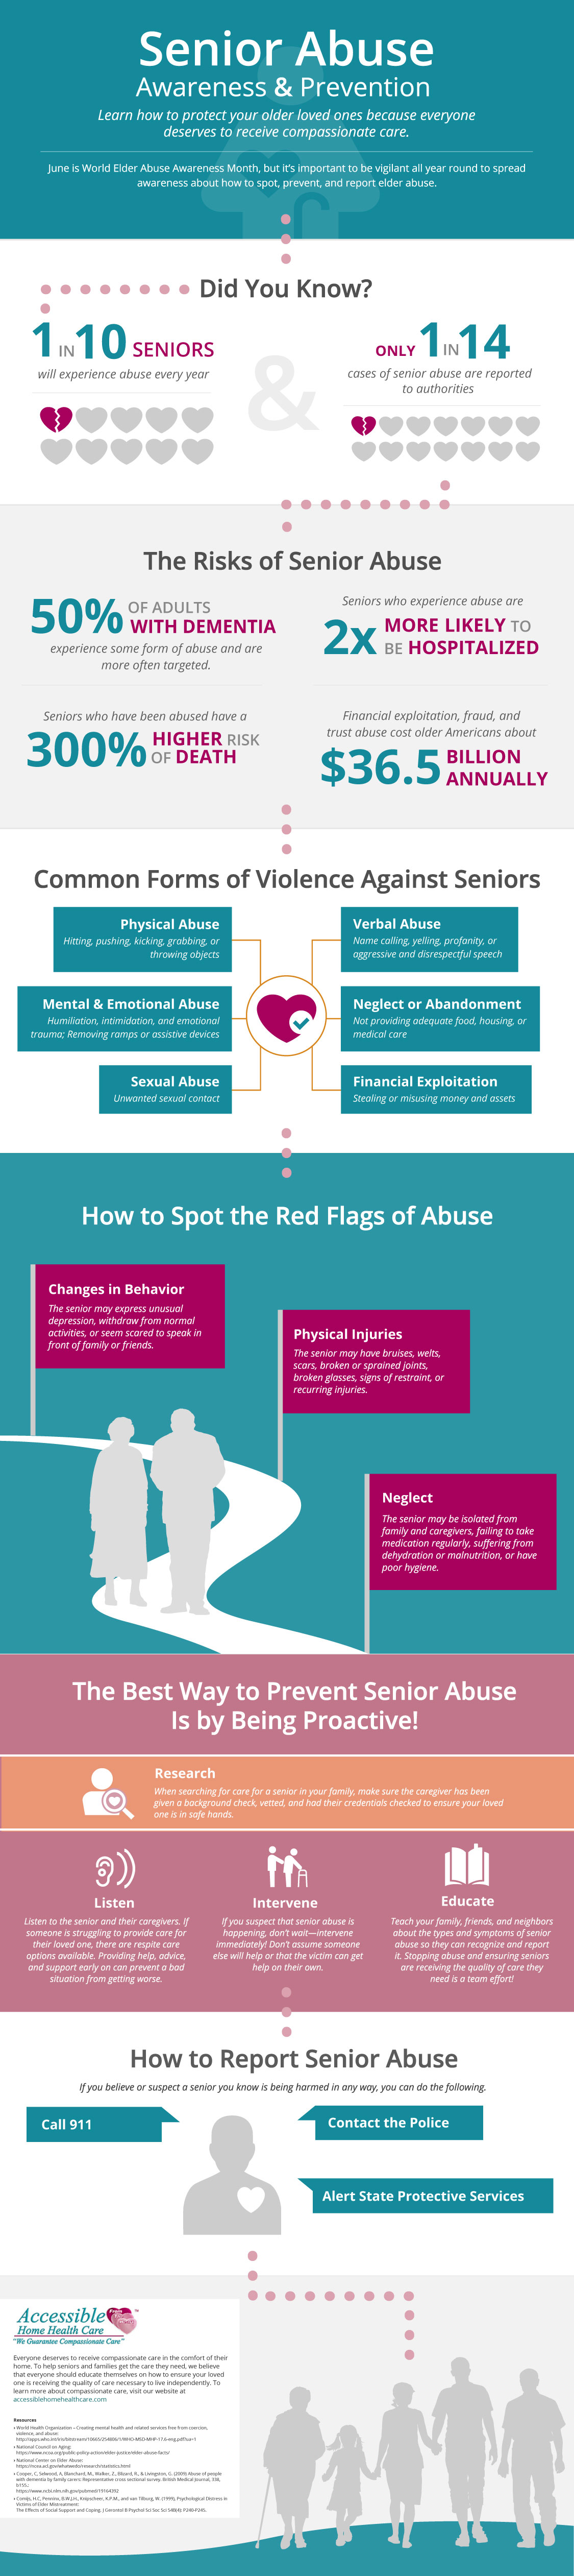 All You Need To Know About The Problem Of Senior Abuse - Infographic